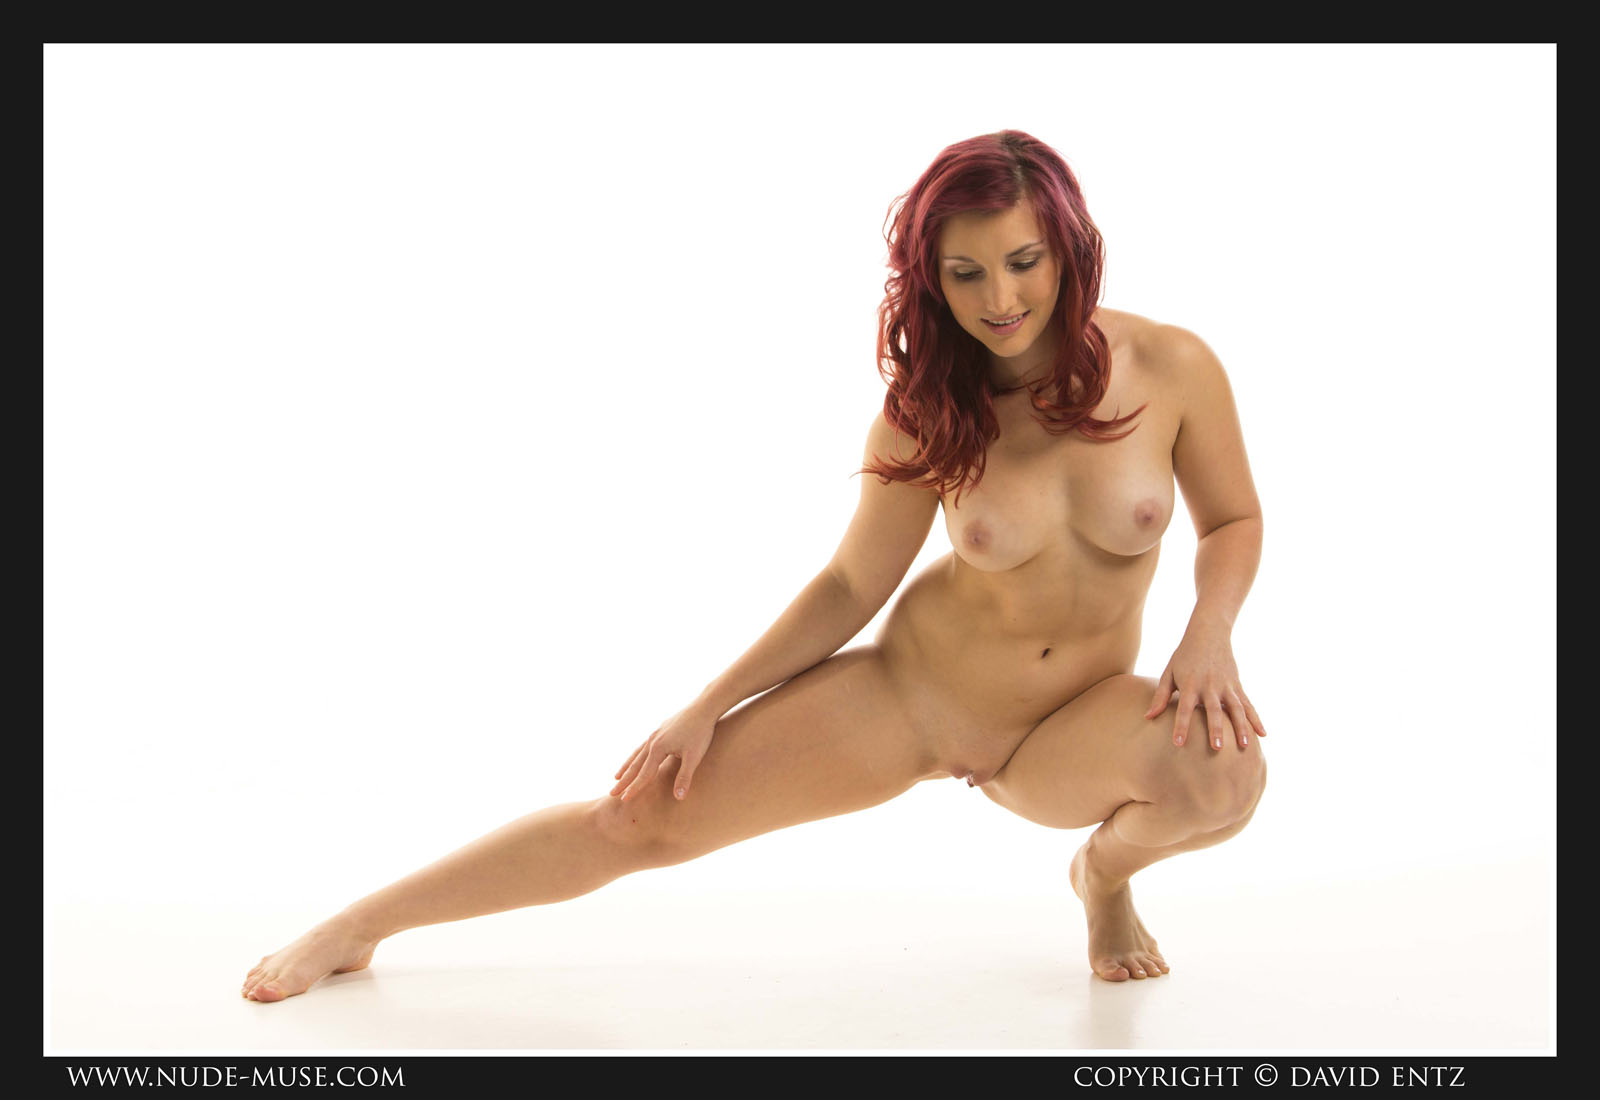 Celeste Exercise Nude Muse 3-2328